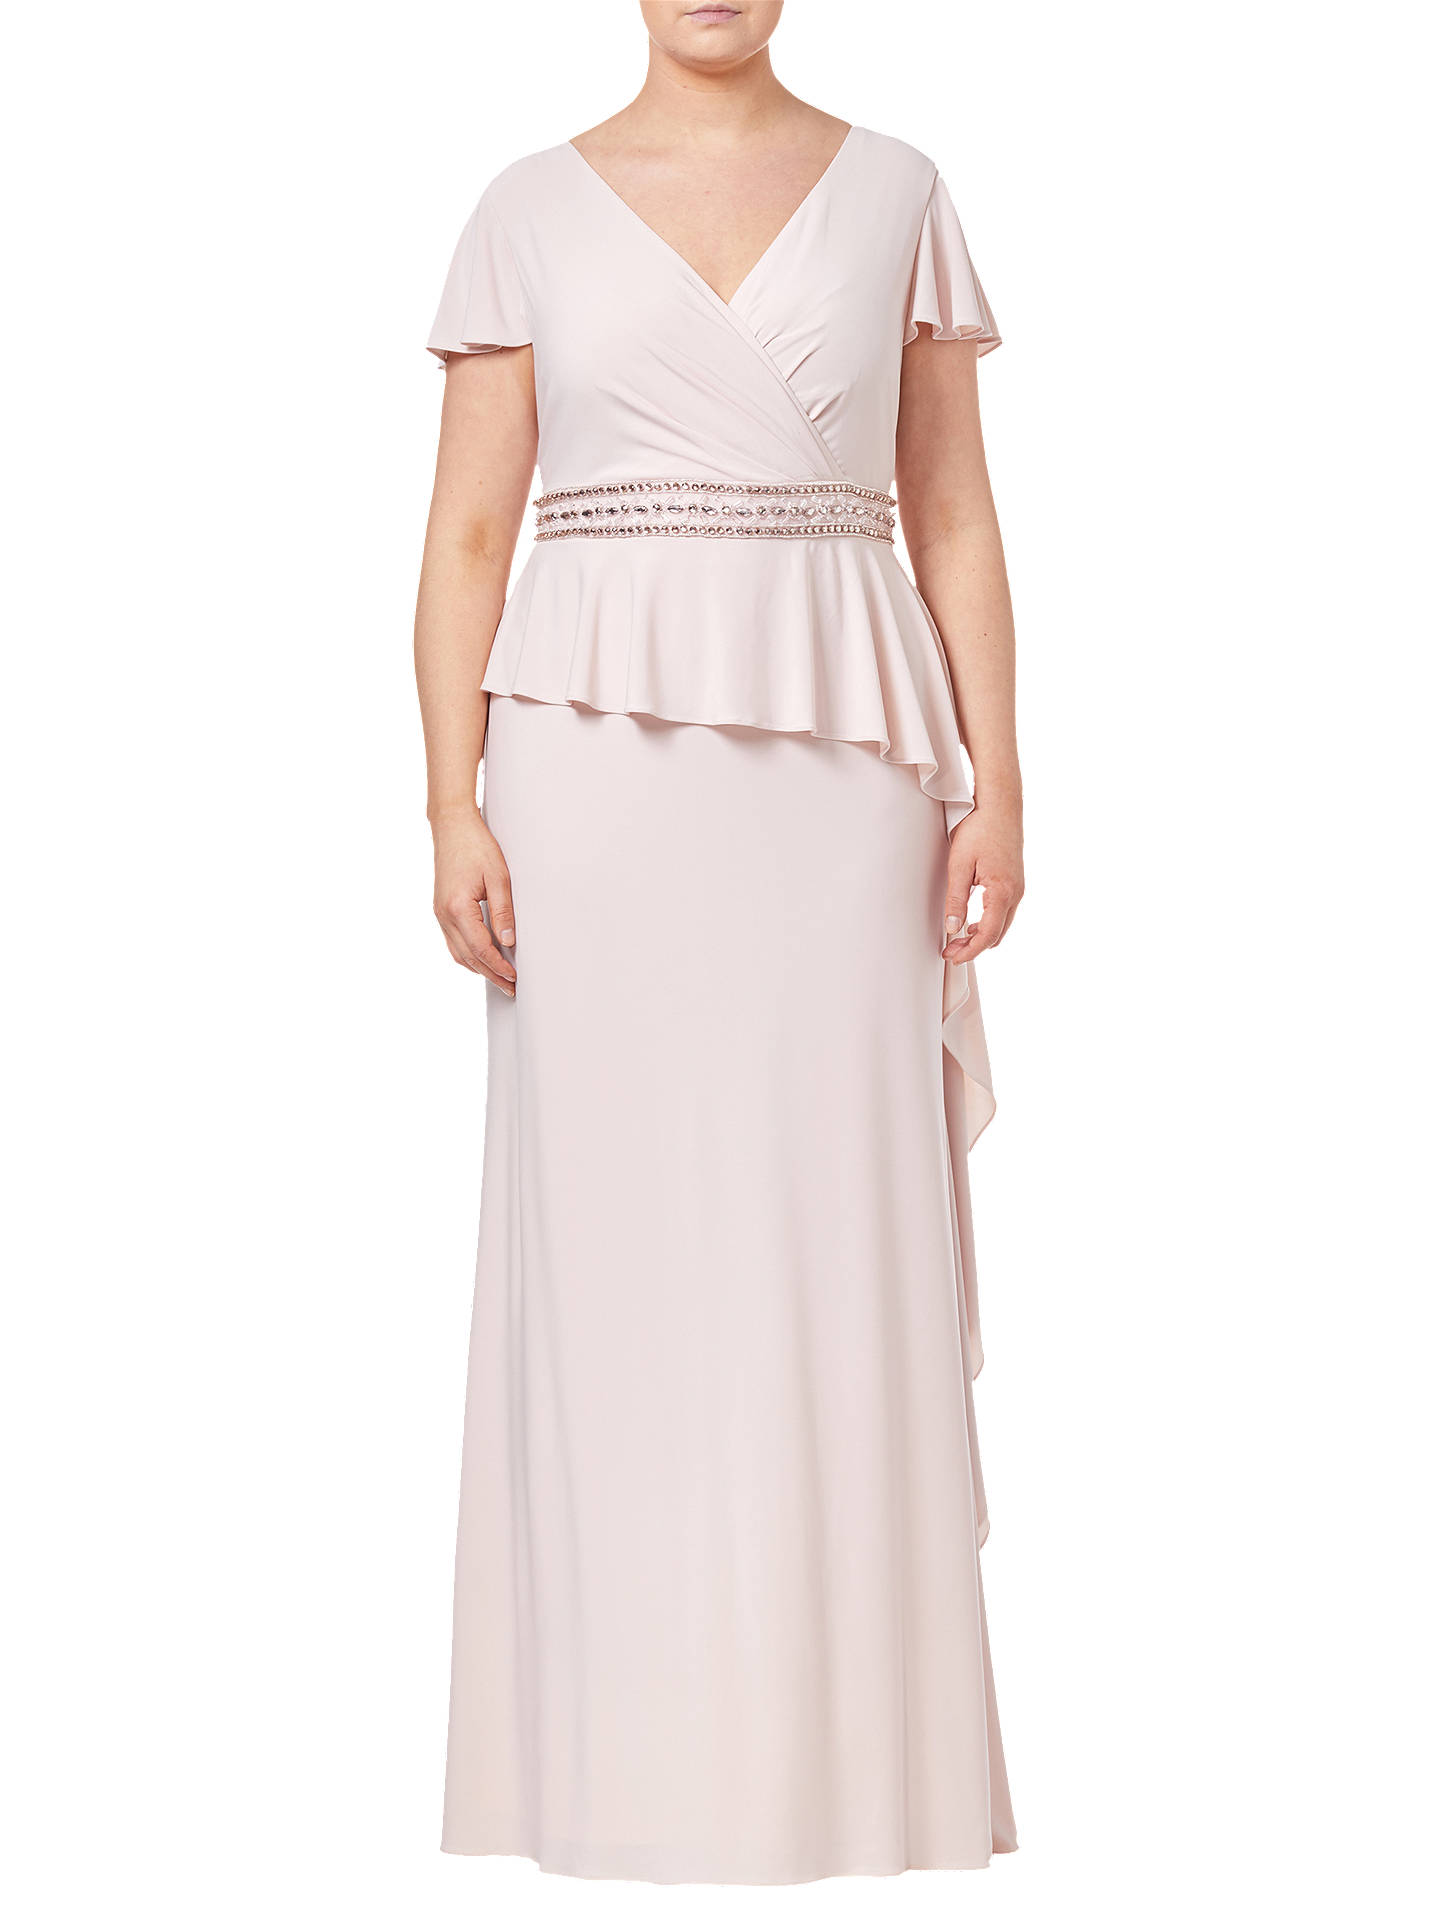 Buy Adrianna Papell Drape Jersey Dress, Blush Pink, 18 Online at johnlewis.com